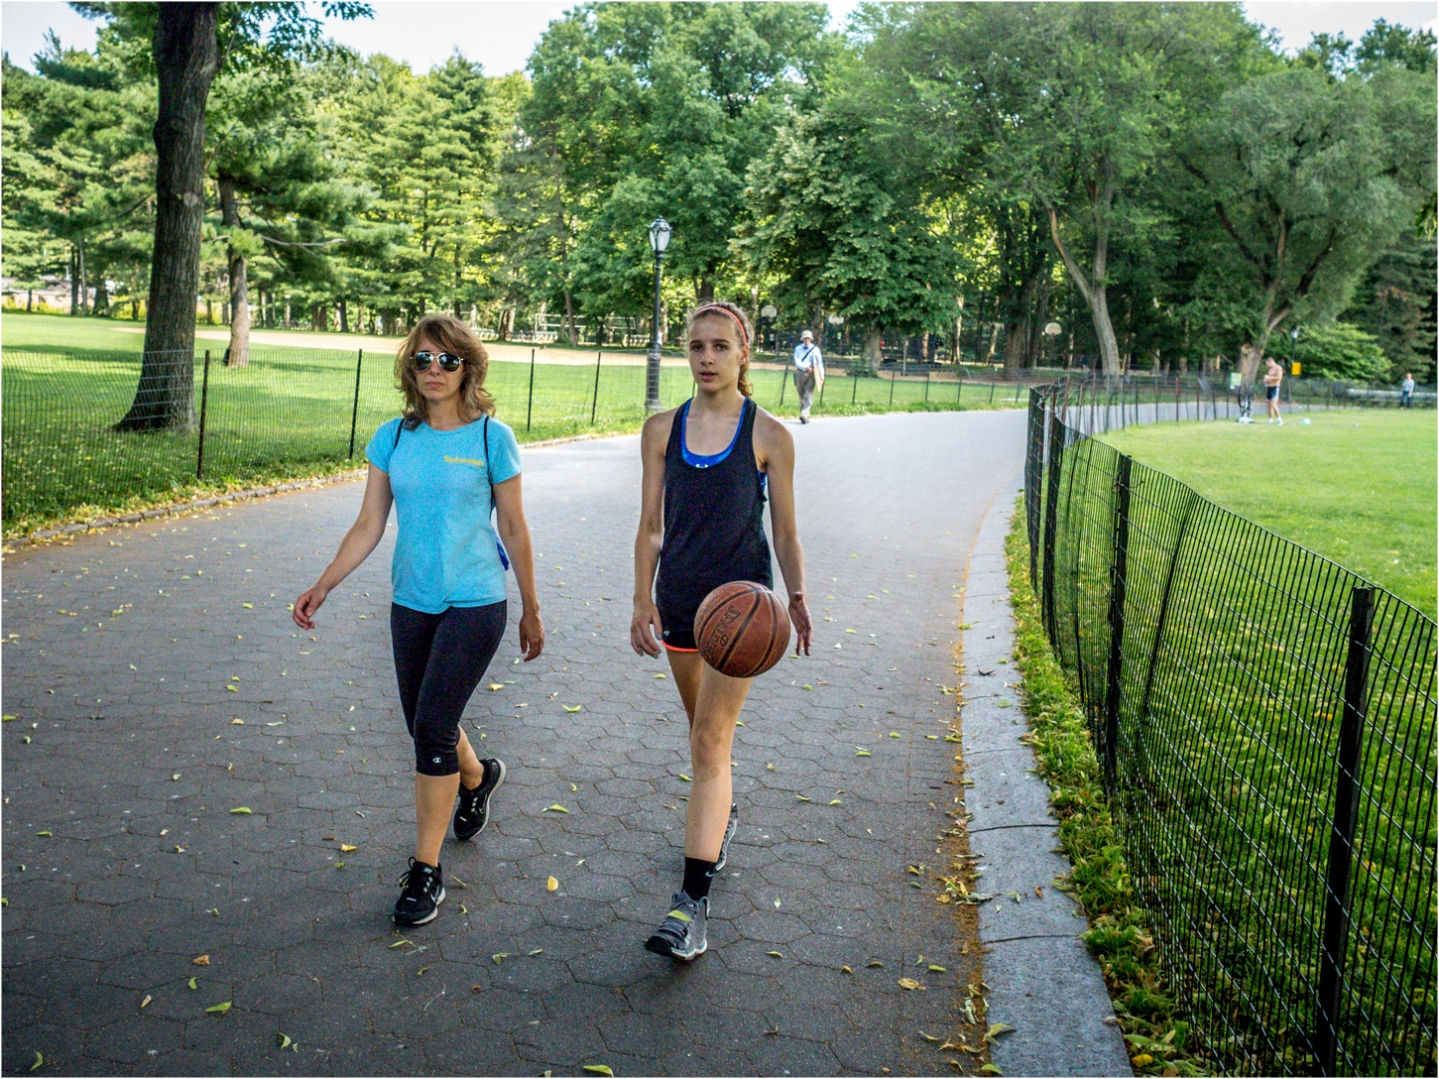 CentralPark-Mom-Daughter-Bball-2014 copy